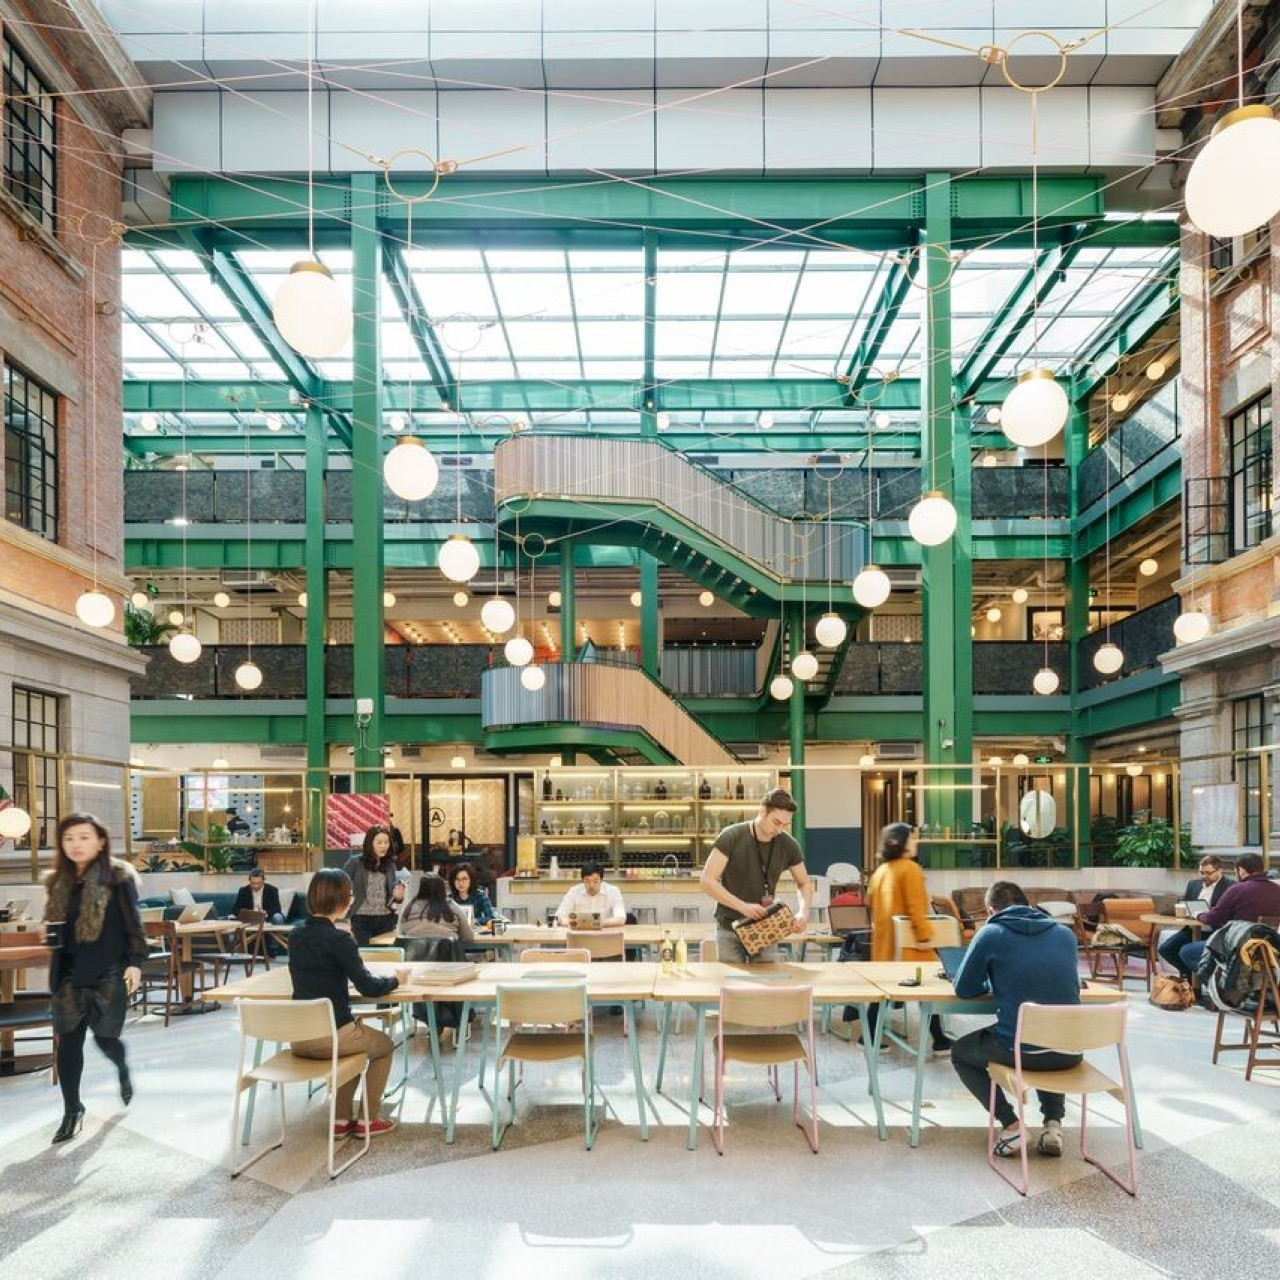 WeWork gets another US$1 billion from SoftBank – this time in the